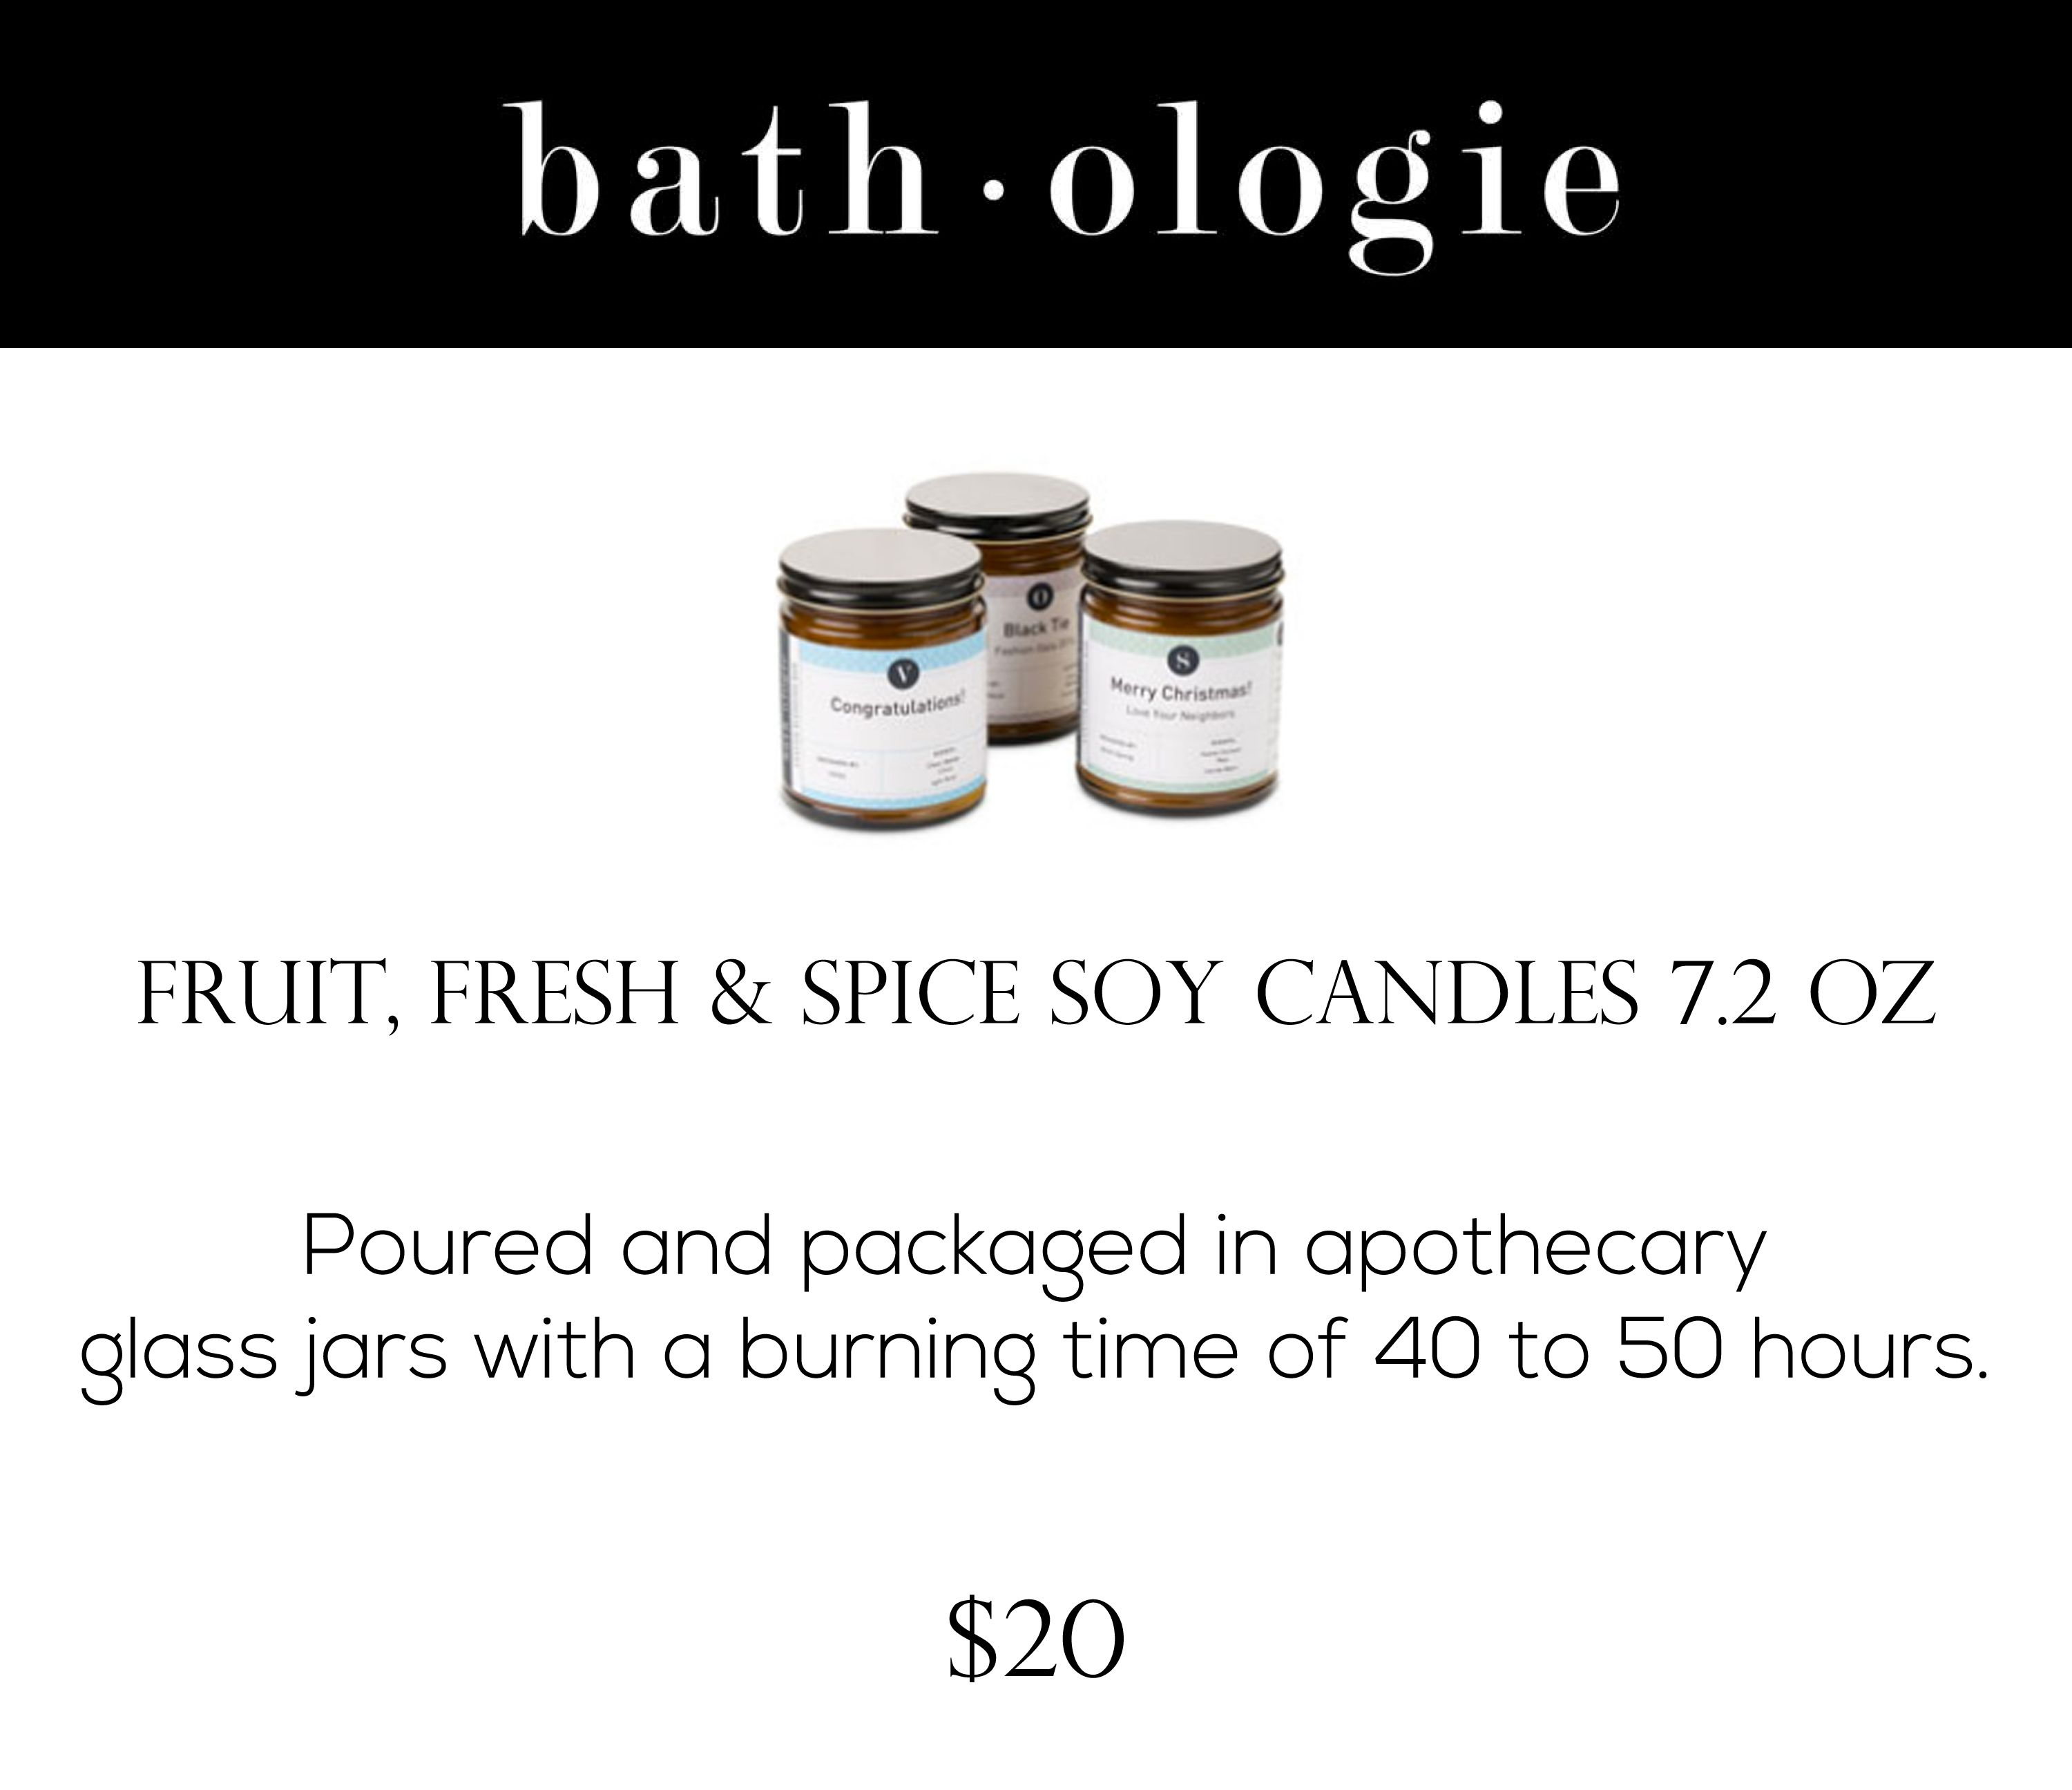 Soy candles by Bathologie